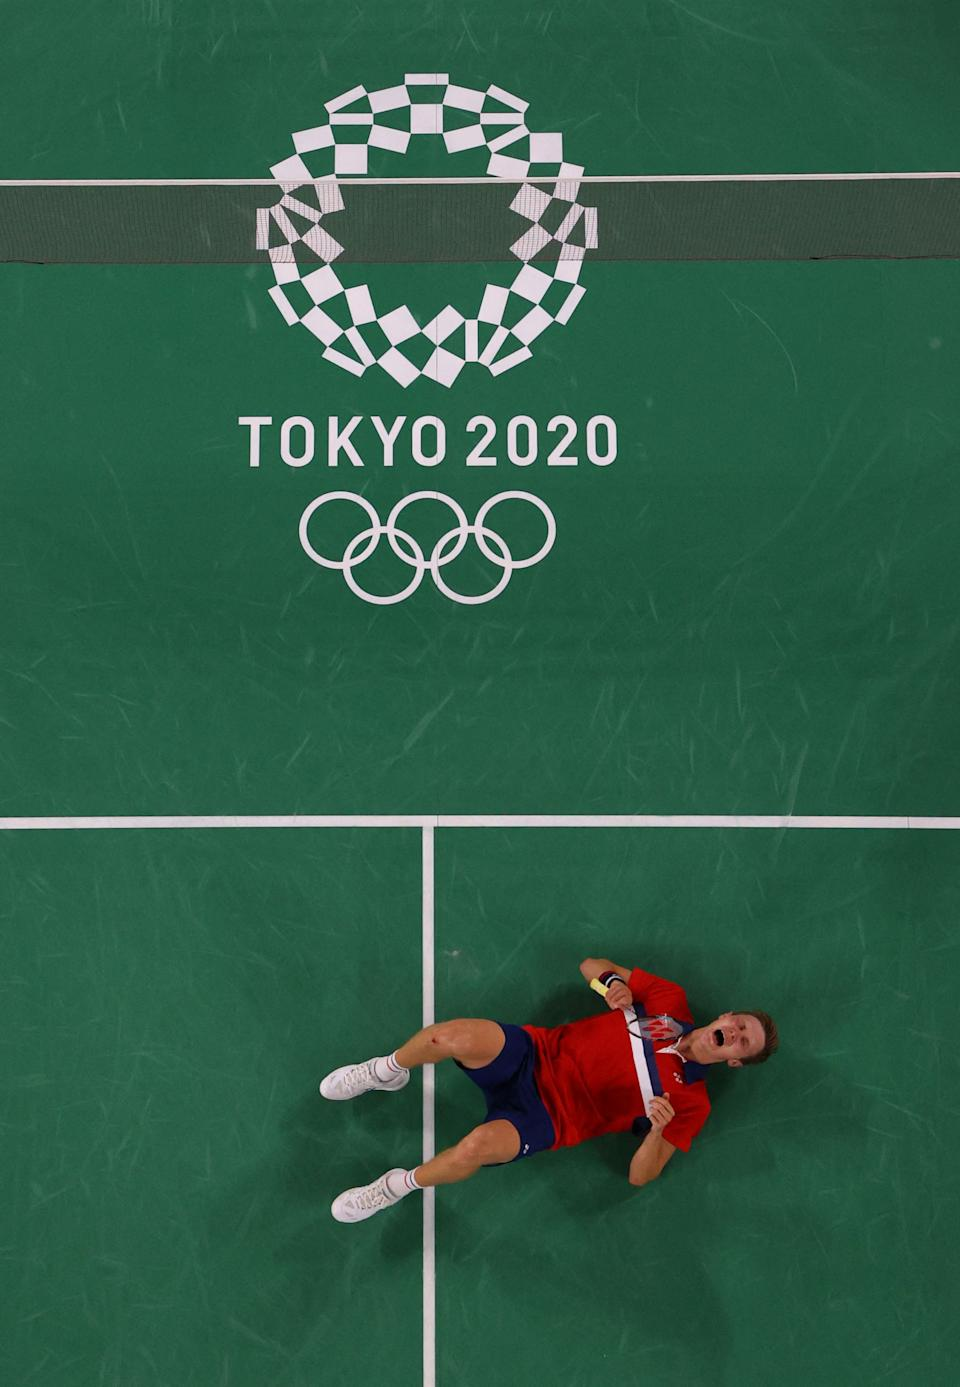 <p>Denmark's Viktor Axelsen celebrates after beating China's Chen Long to win their men's singles badminton final match during the Tokyo 2020 Olympic Games at the Musashino Forest Sports Plaza in Tokyo on August 2, 2021. (Photo by LINTAO ZHANG / POOL / AFP) (Photo by LINTAO ZHANG/POOL/AFP via Getty Images)</p>